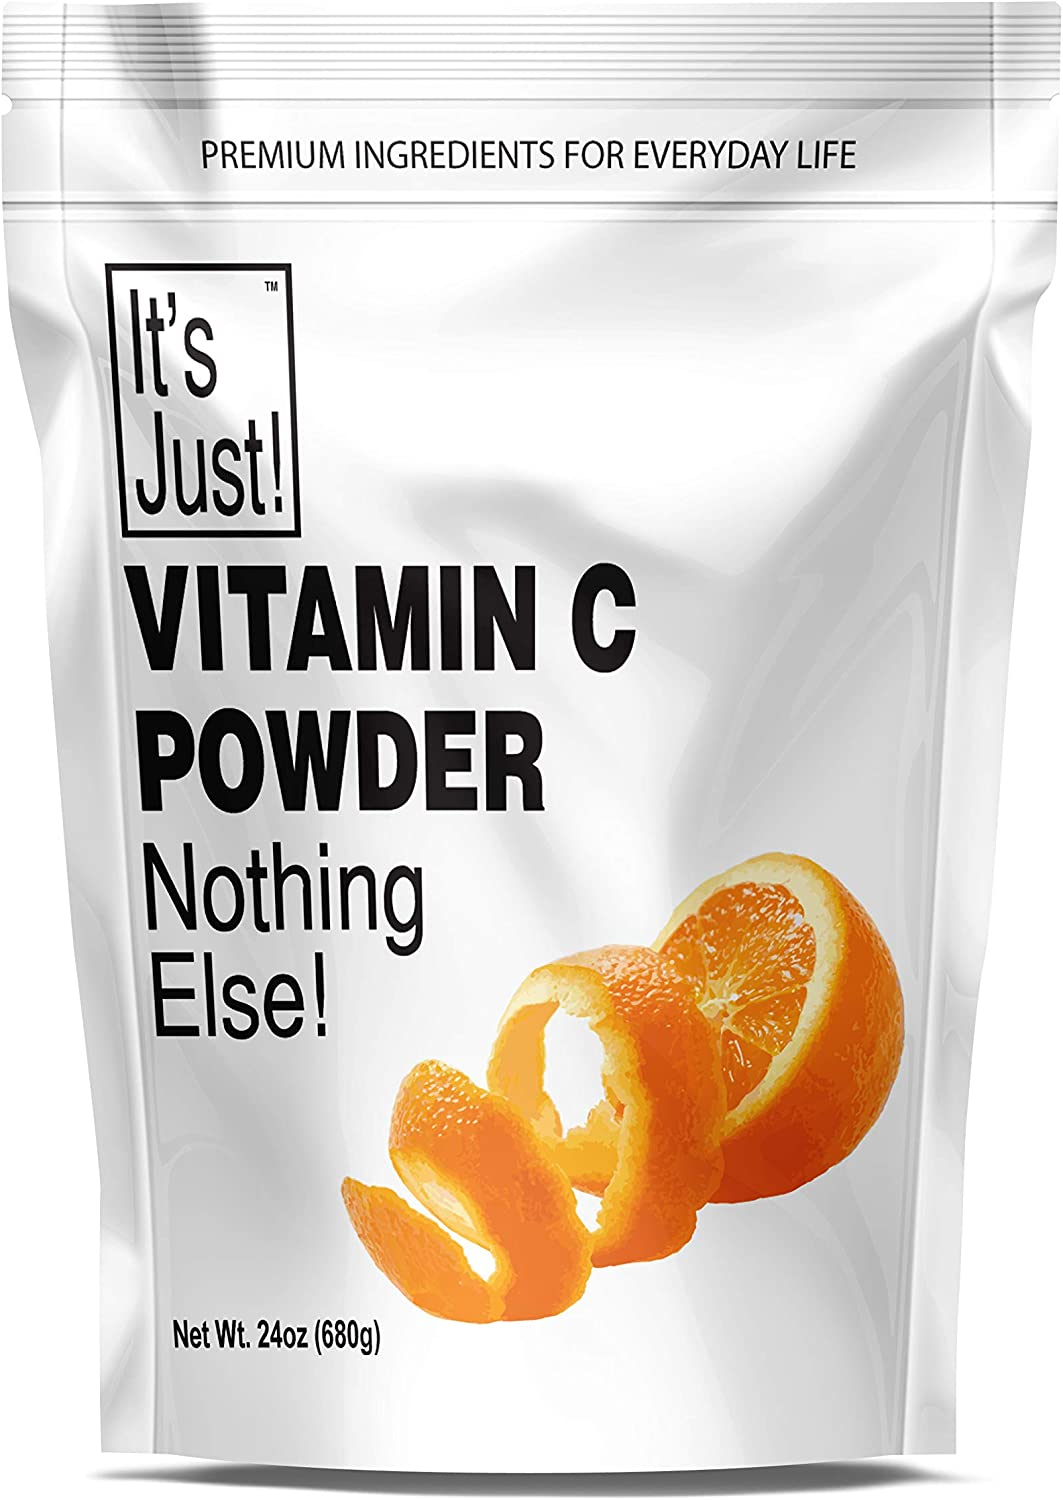 It's Just - Vitamin C Powder, 100% Pure Ascorbic Acid, Non-GMO, Immune Support, Homemade Cosmetics (24oz)